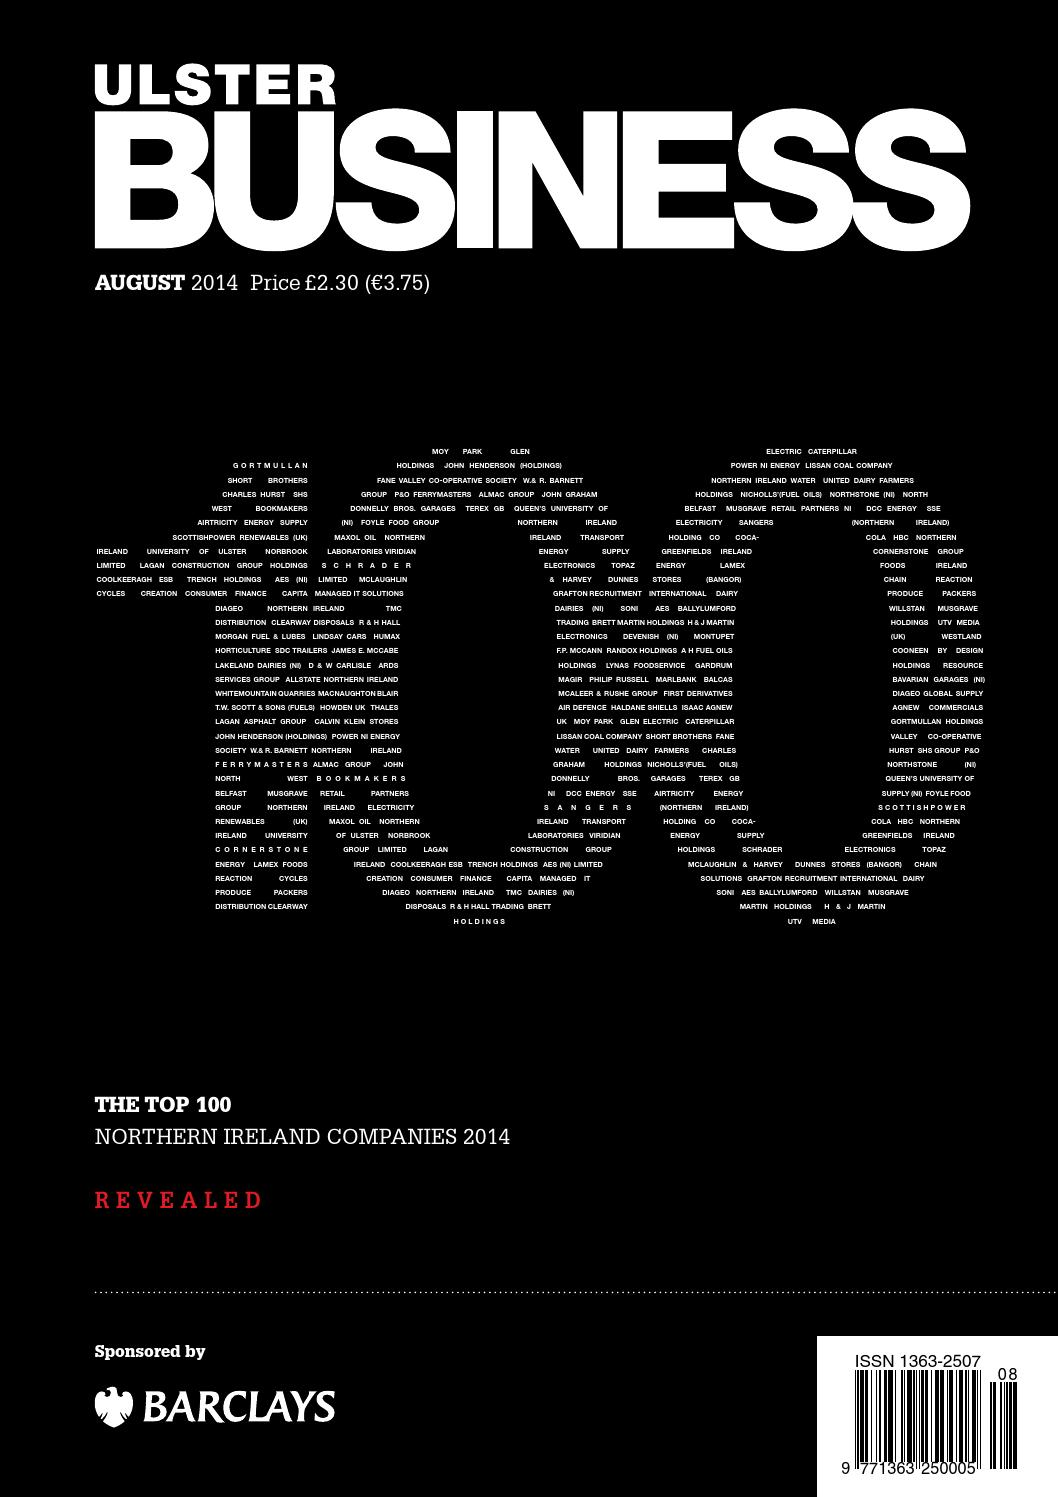 Ulster business august 2014 the top 100 by ulster business issuu fandeluxe Image collections